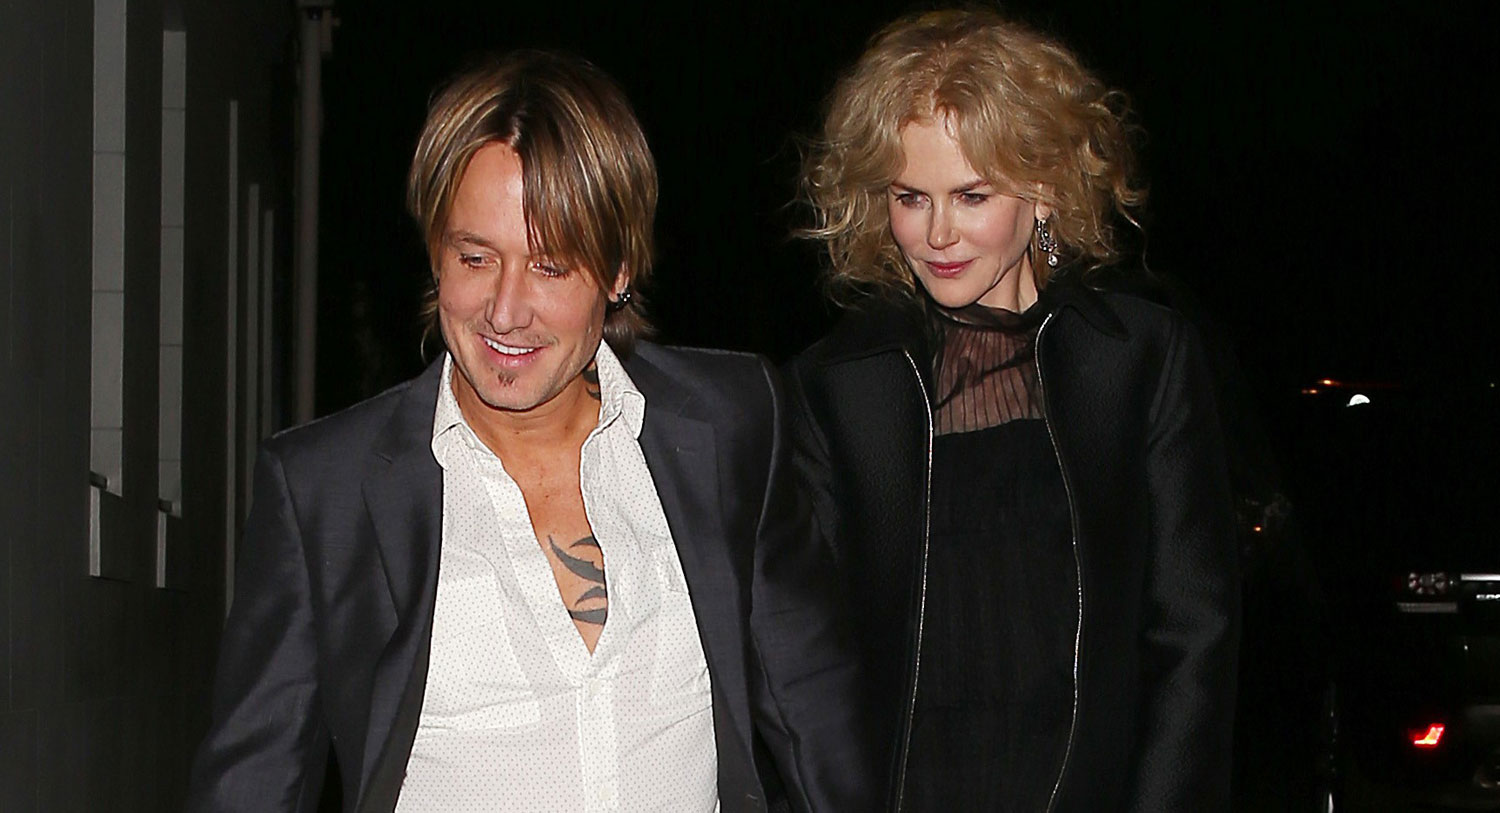 Nicole Kidman Keith Urban Anniversary: Nicole Kidman & Keith Urban Celebrate Their 10th